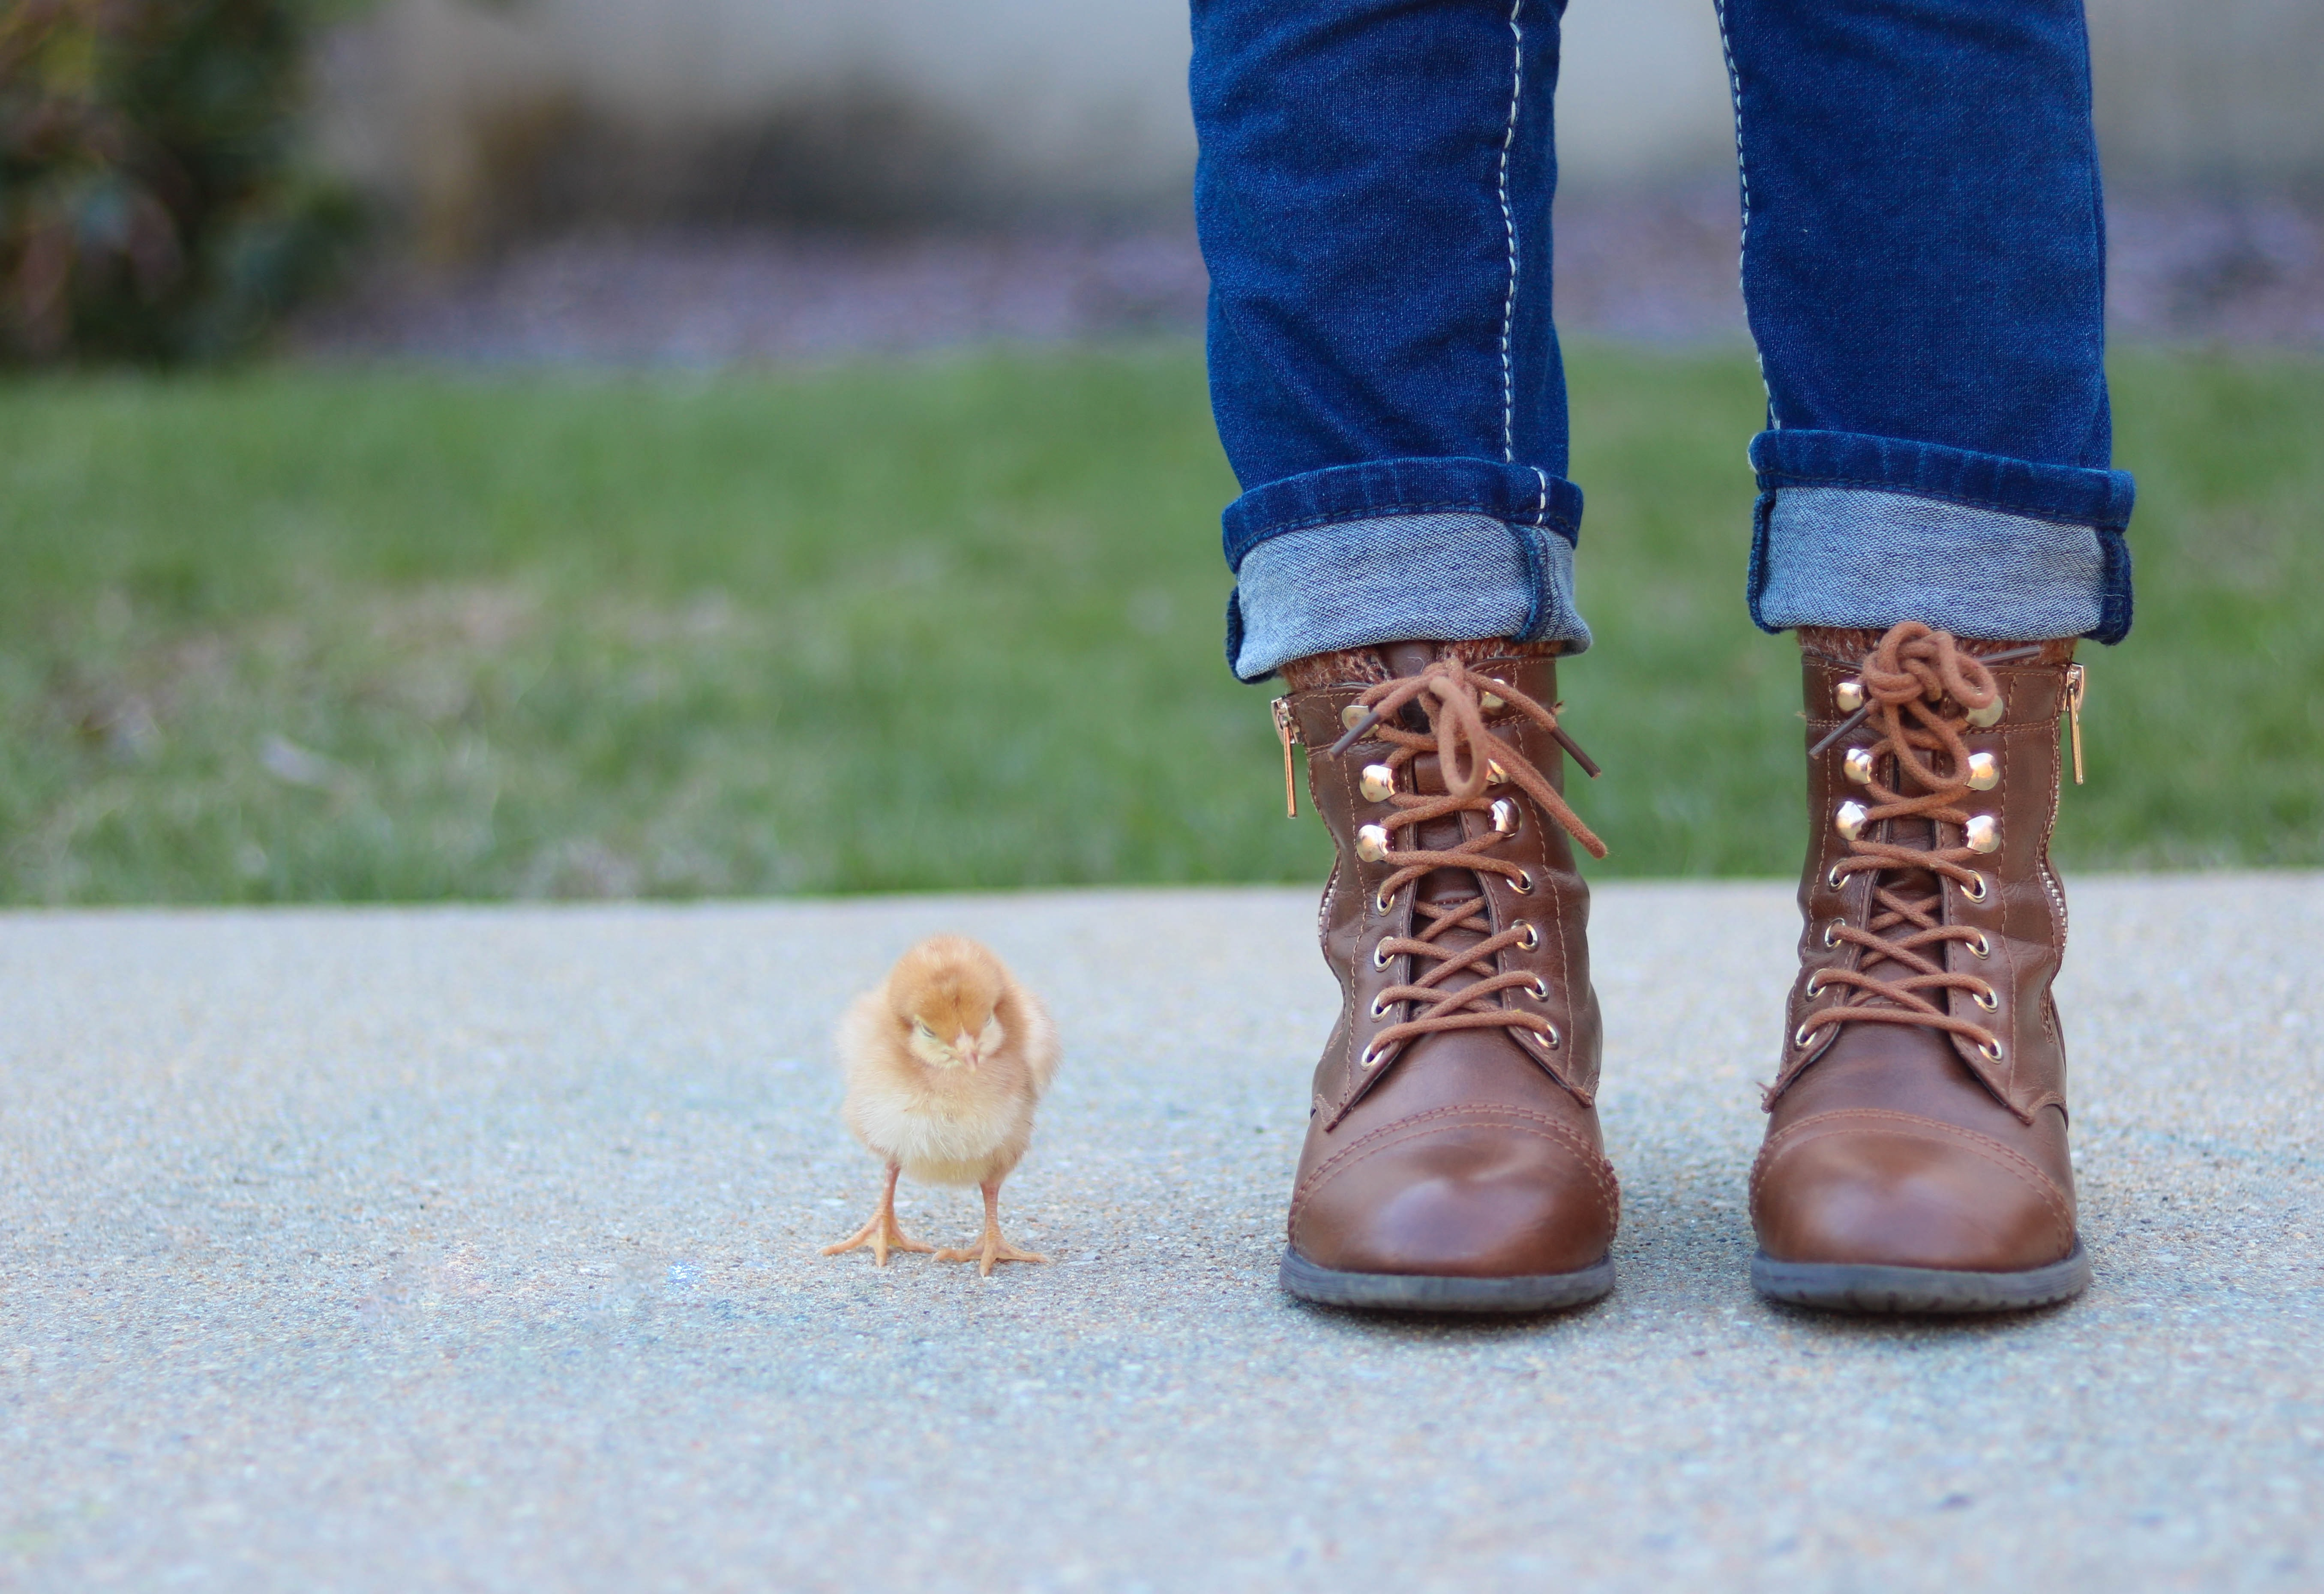 Cute baby chick stands next to a person in brown boots